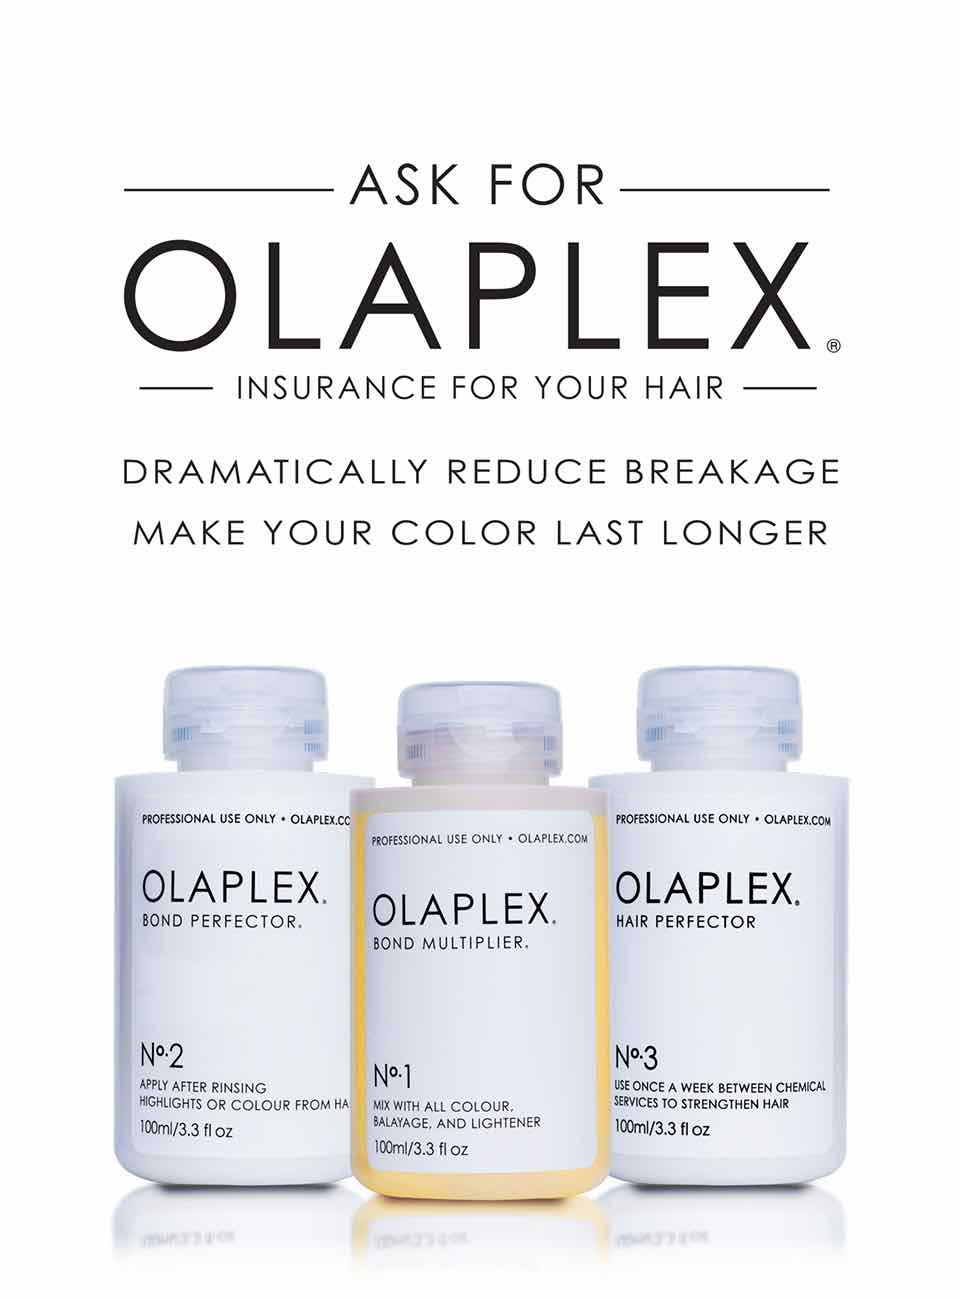 Olaplex hair treatments in Clevedon at Price-Driscoll